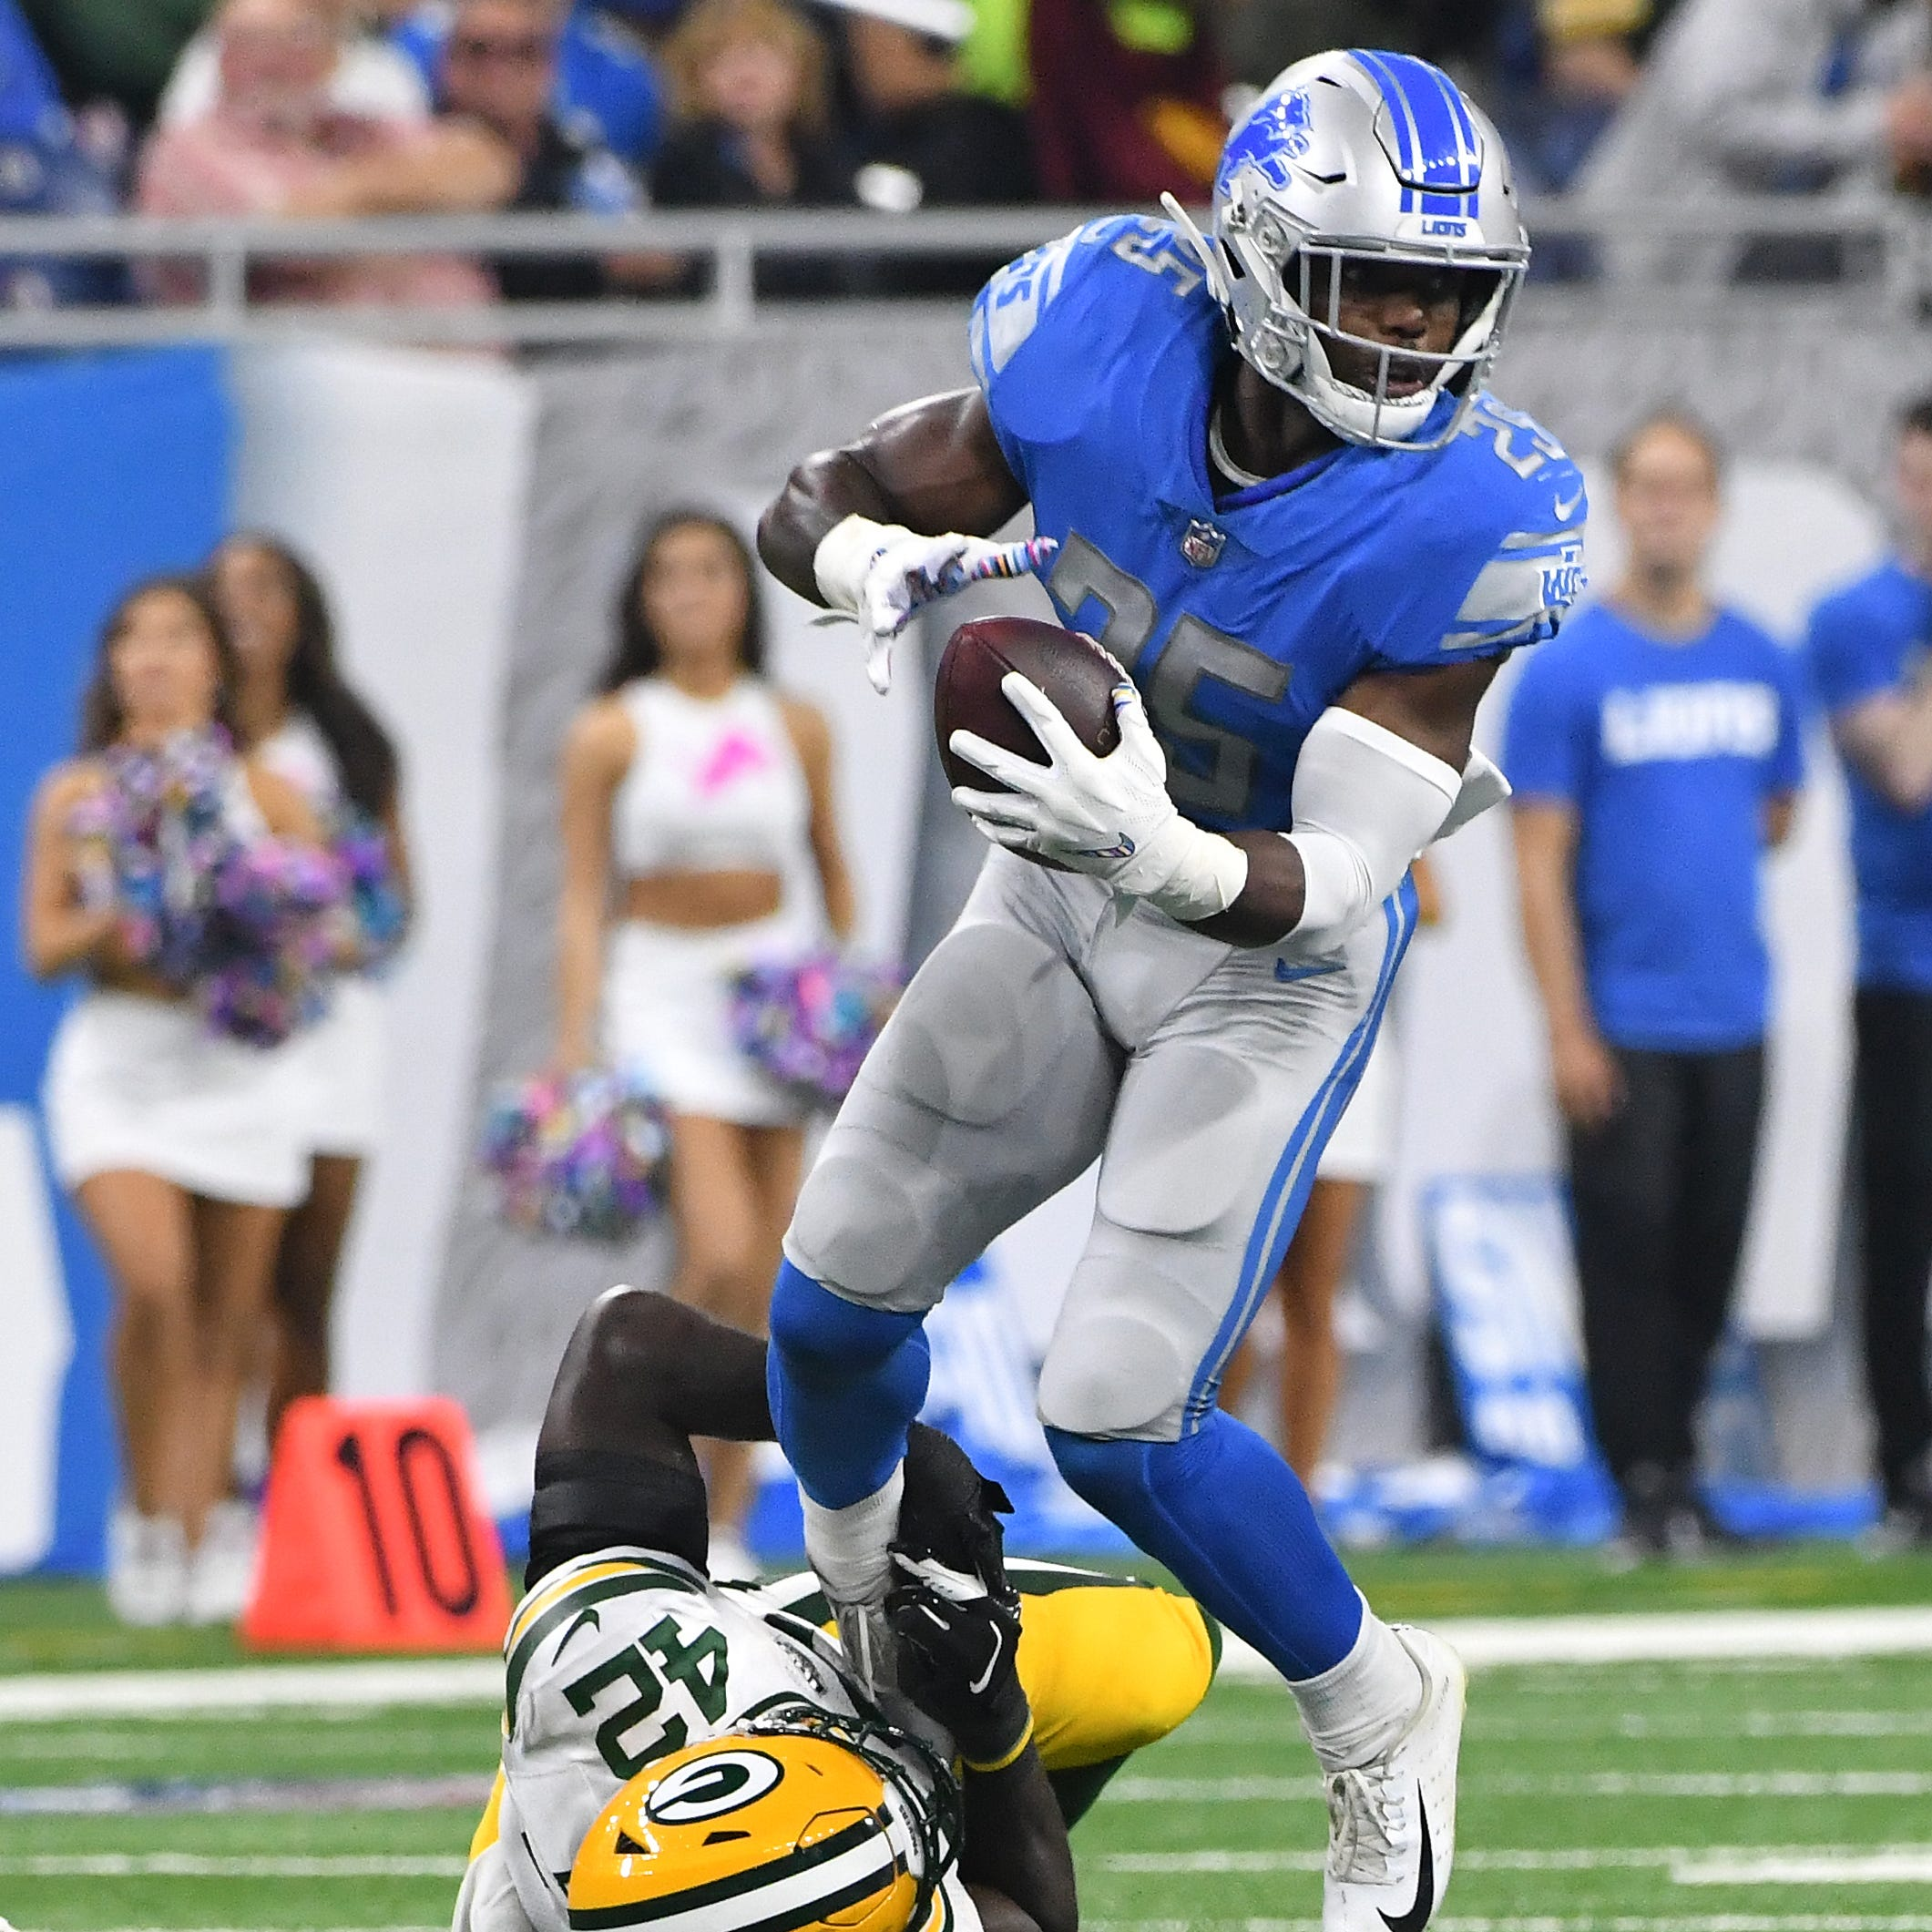 Lions running back Theo Riddick misses second straight practice